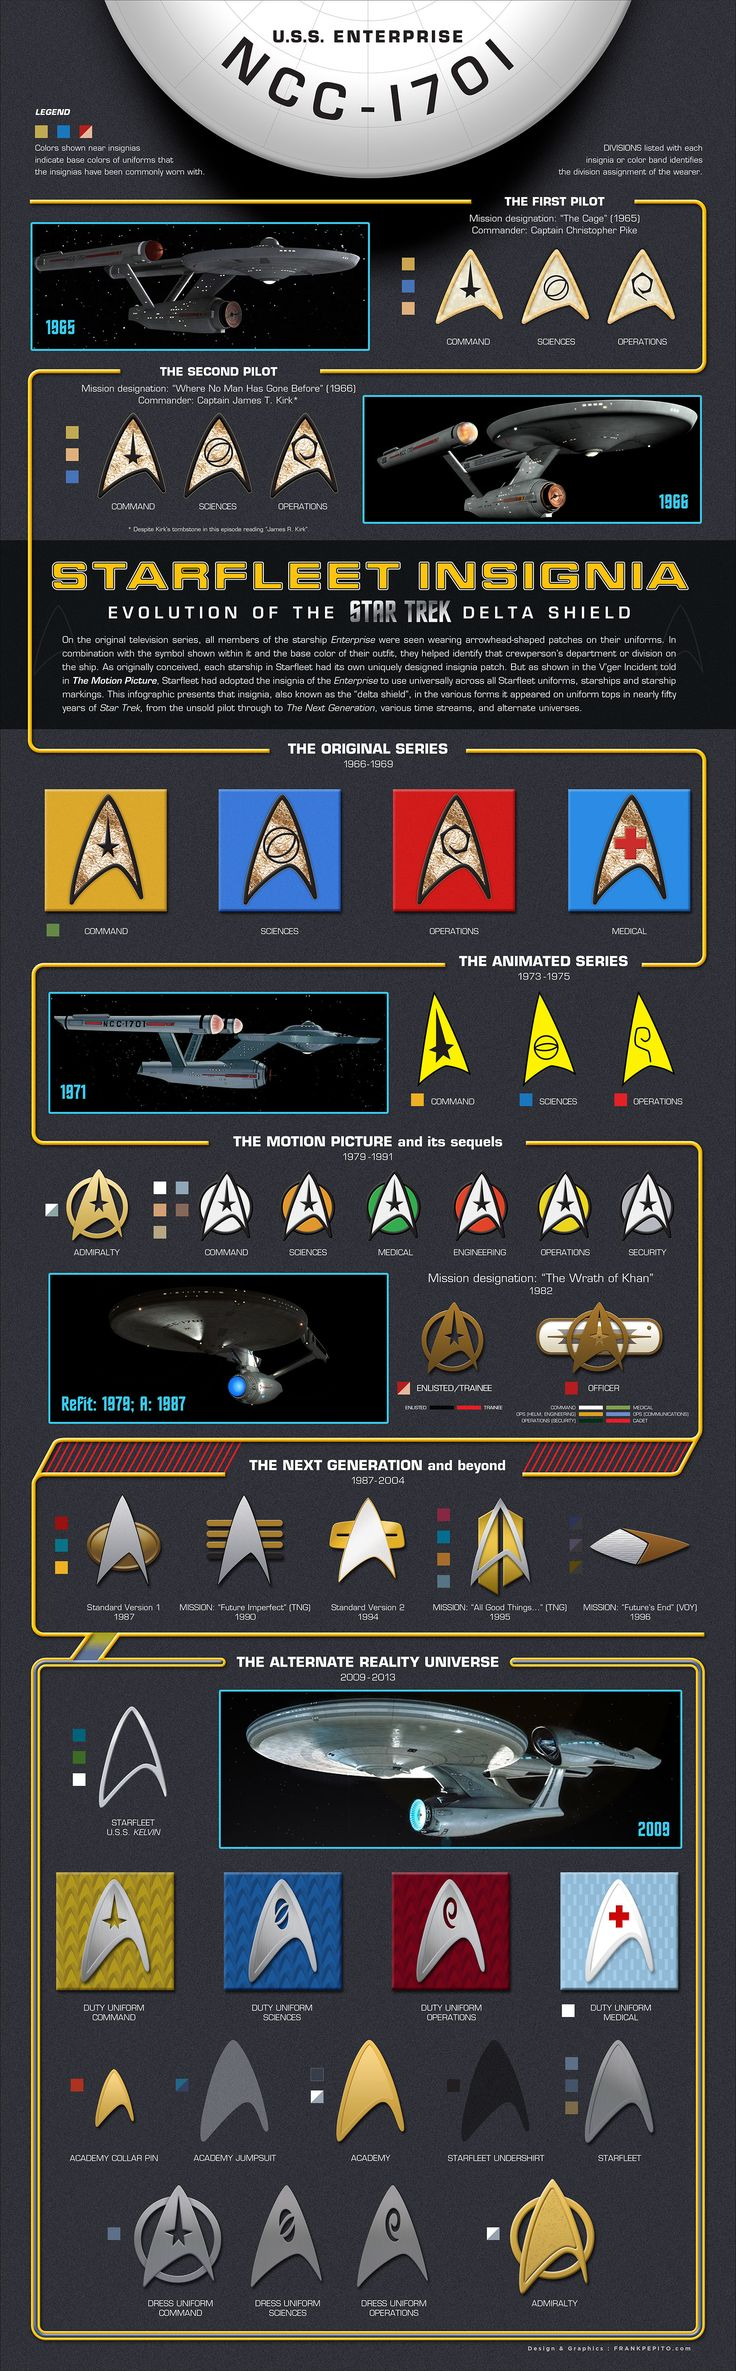 "An infographic showing the design evolution of the ""delta shield"" insignia of Star Trek's Starfleet."